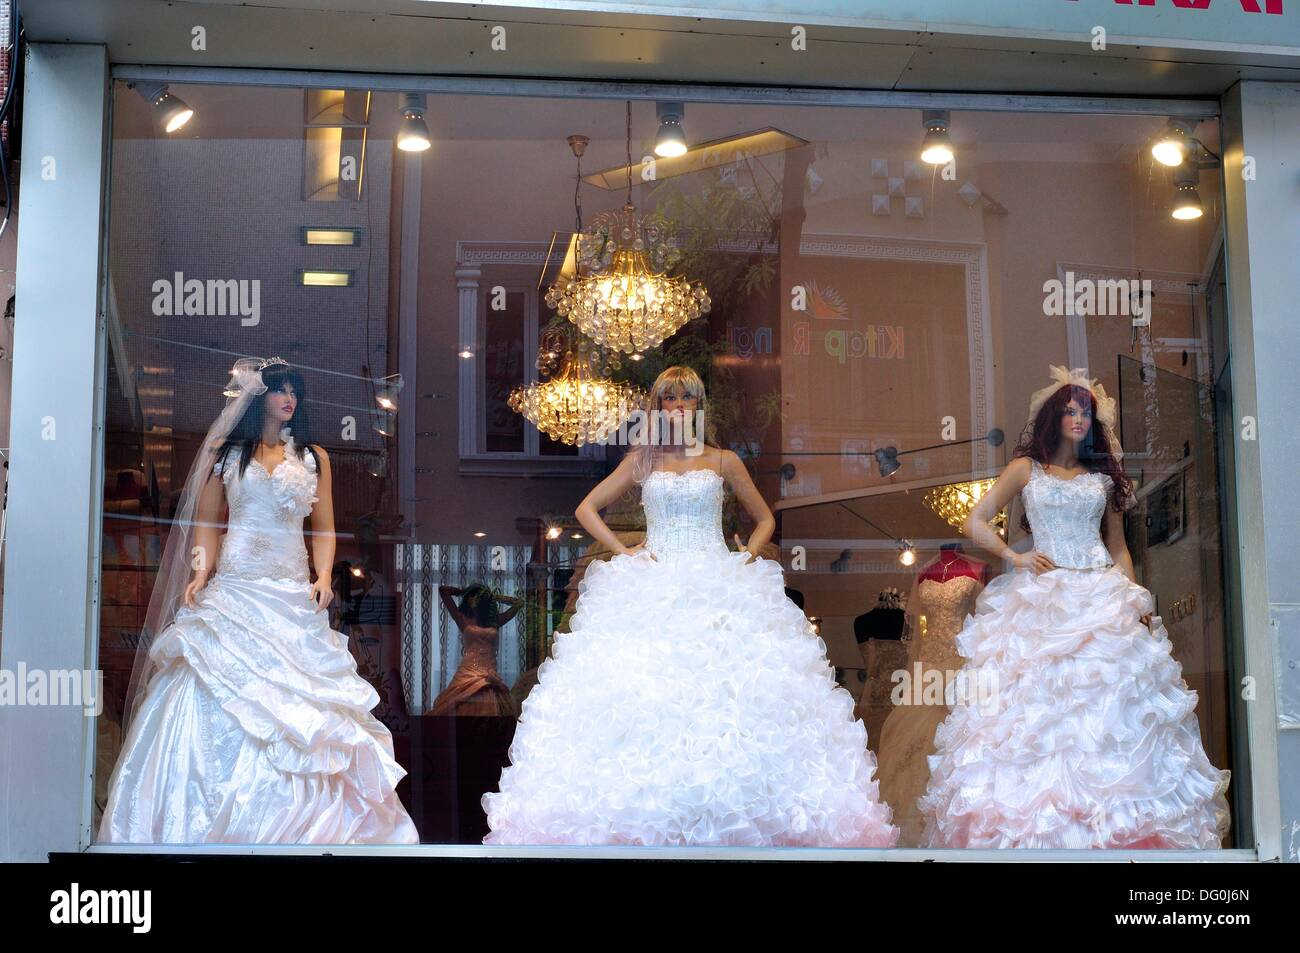 wedding dress online shop shop wedding dresses Wedding Dress Online Shop 54